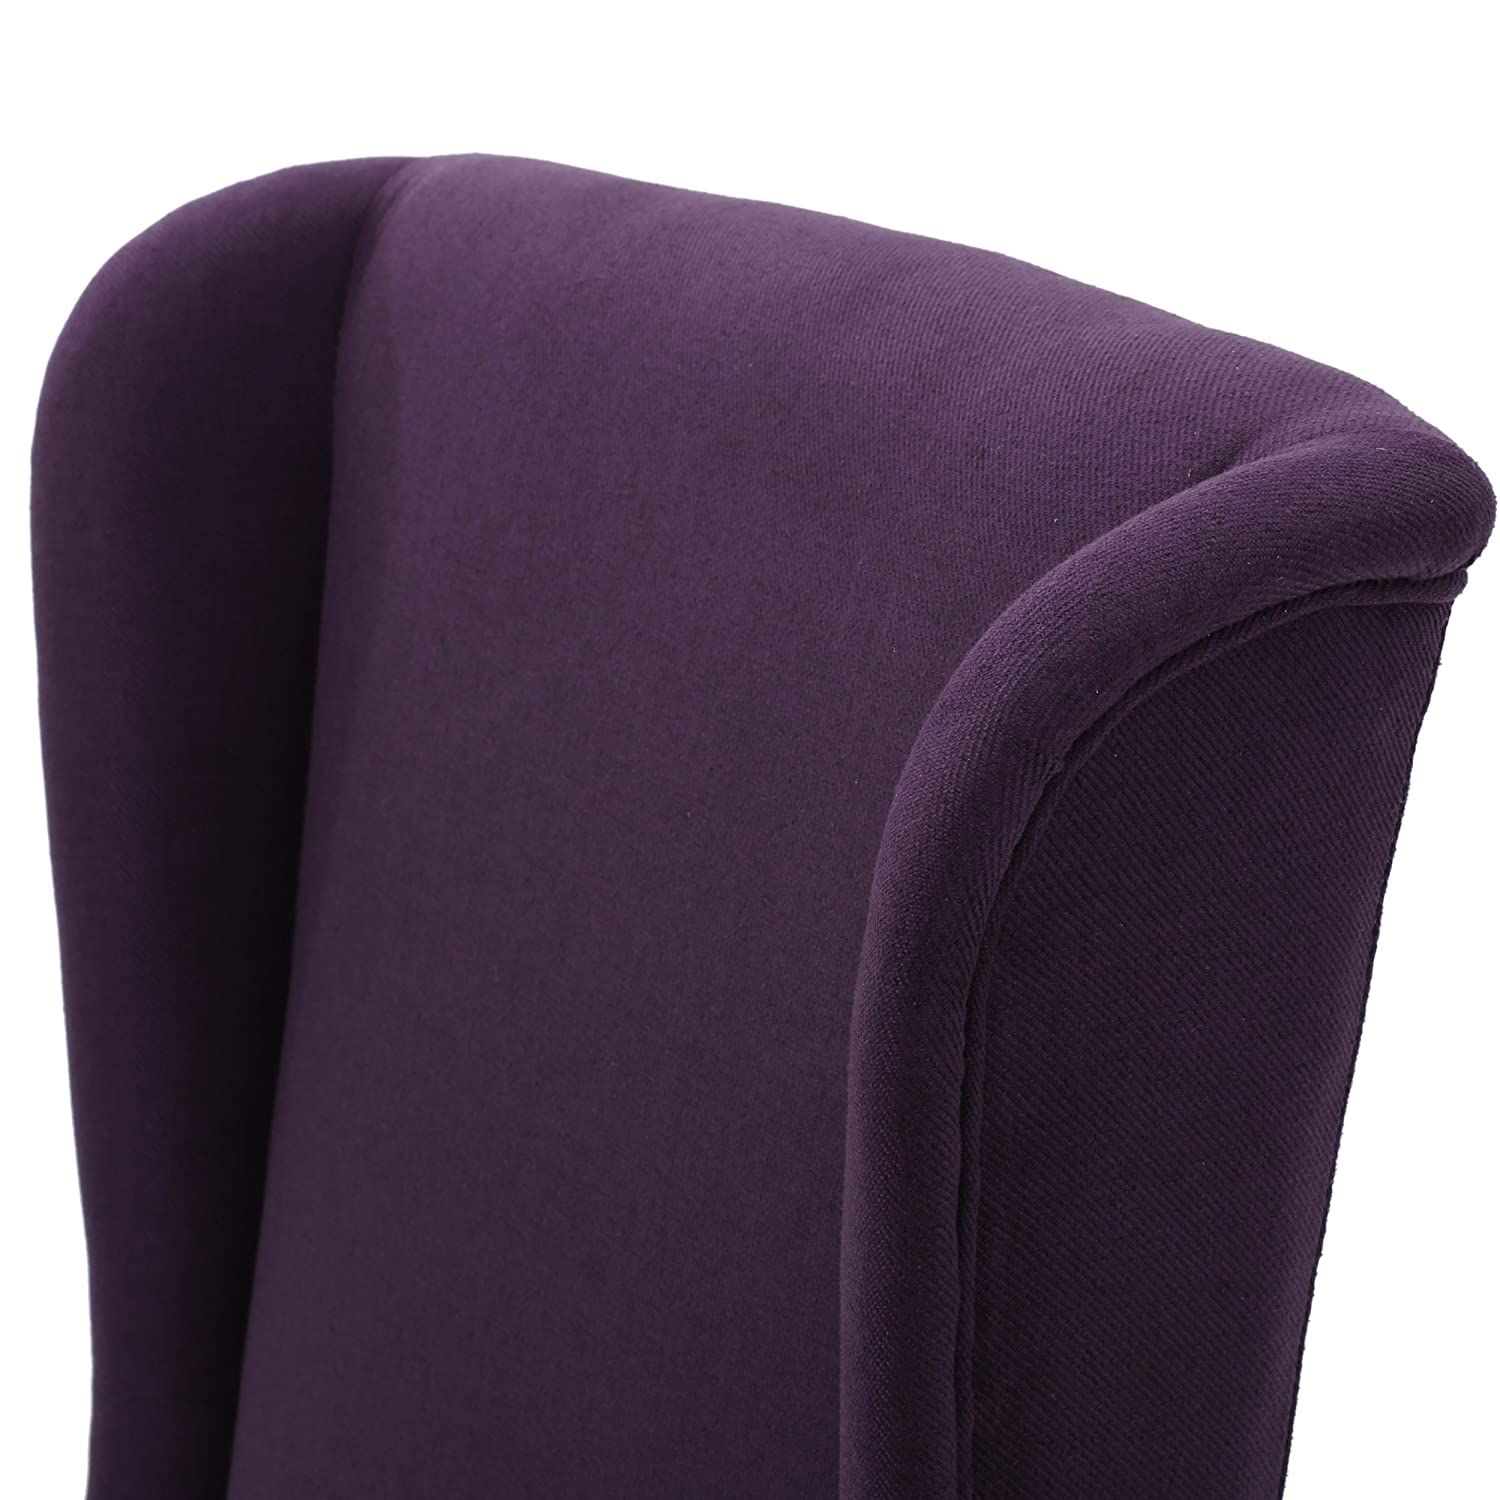 Christopher Knight Home 299948 Callie Plum Fabric Dining Chair